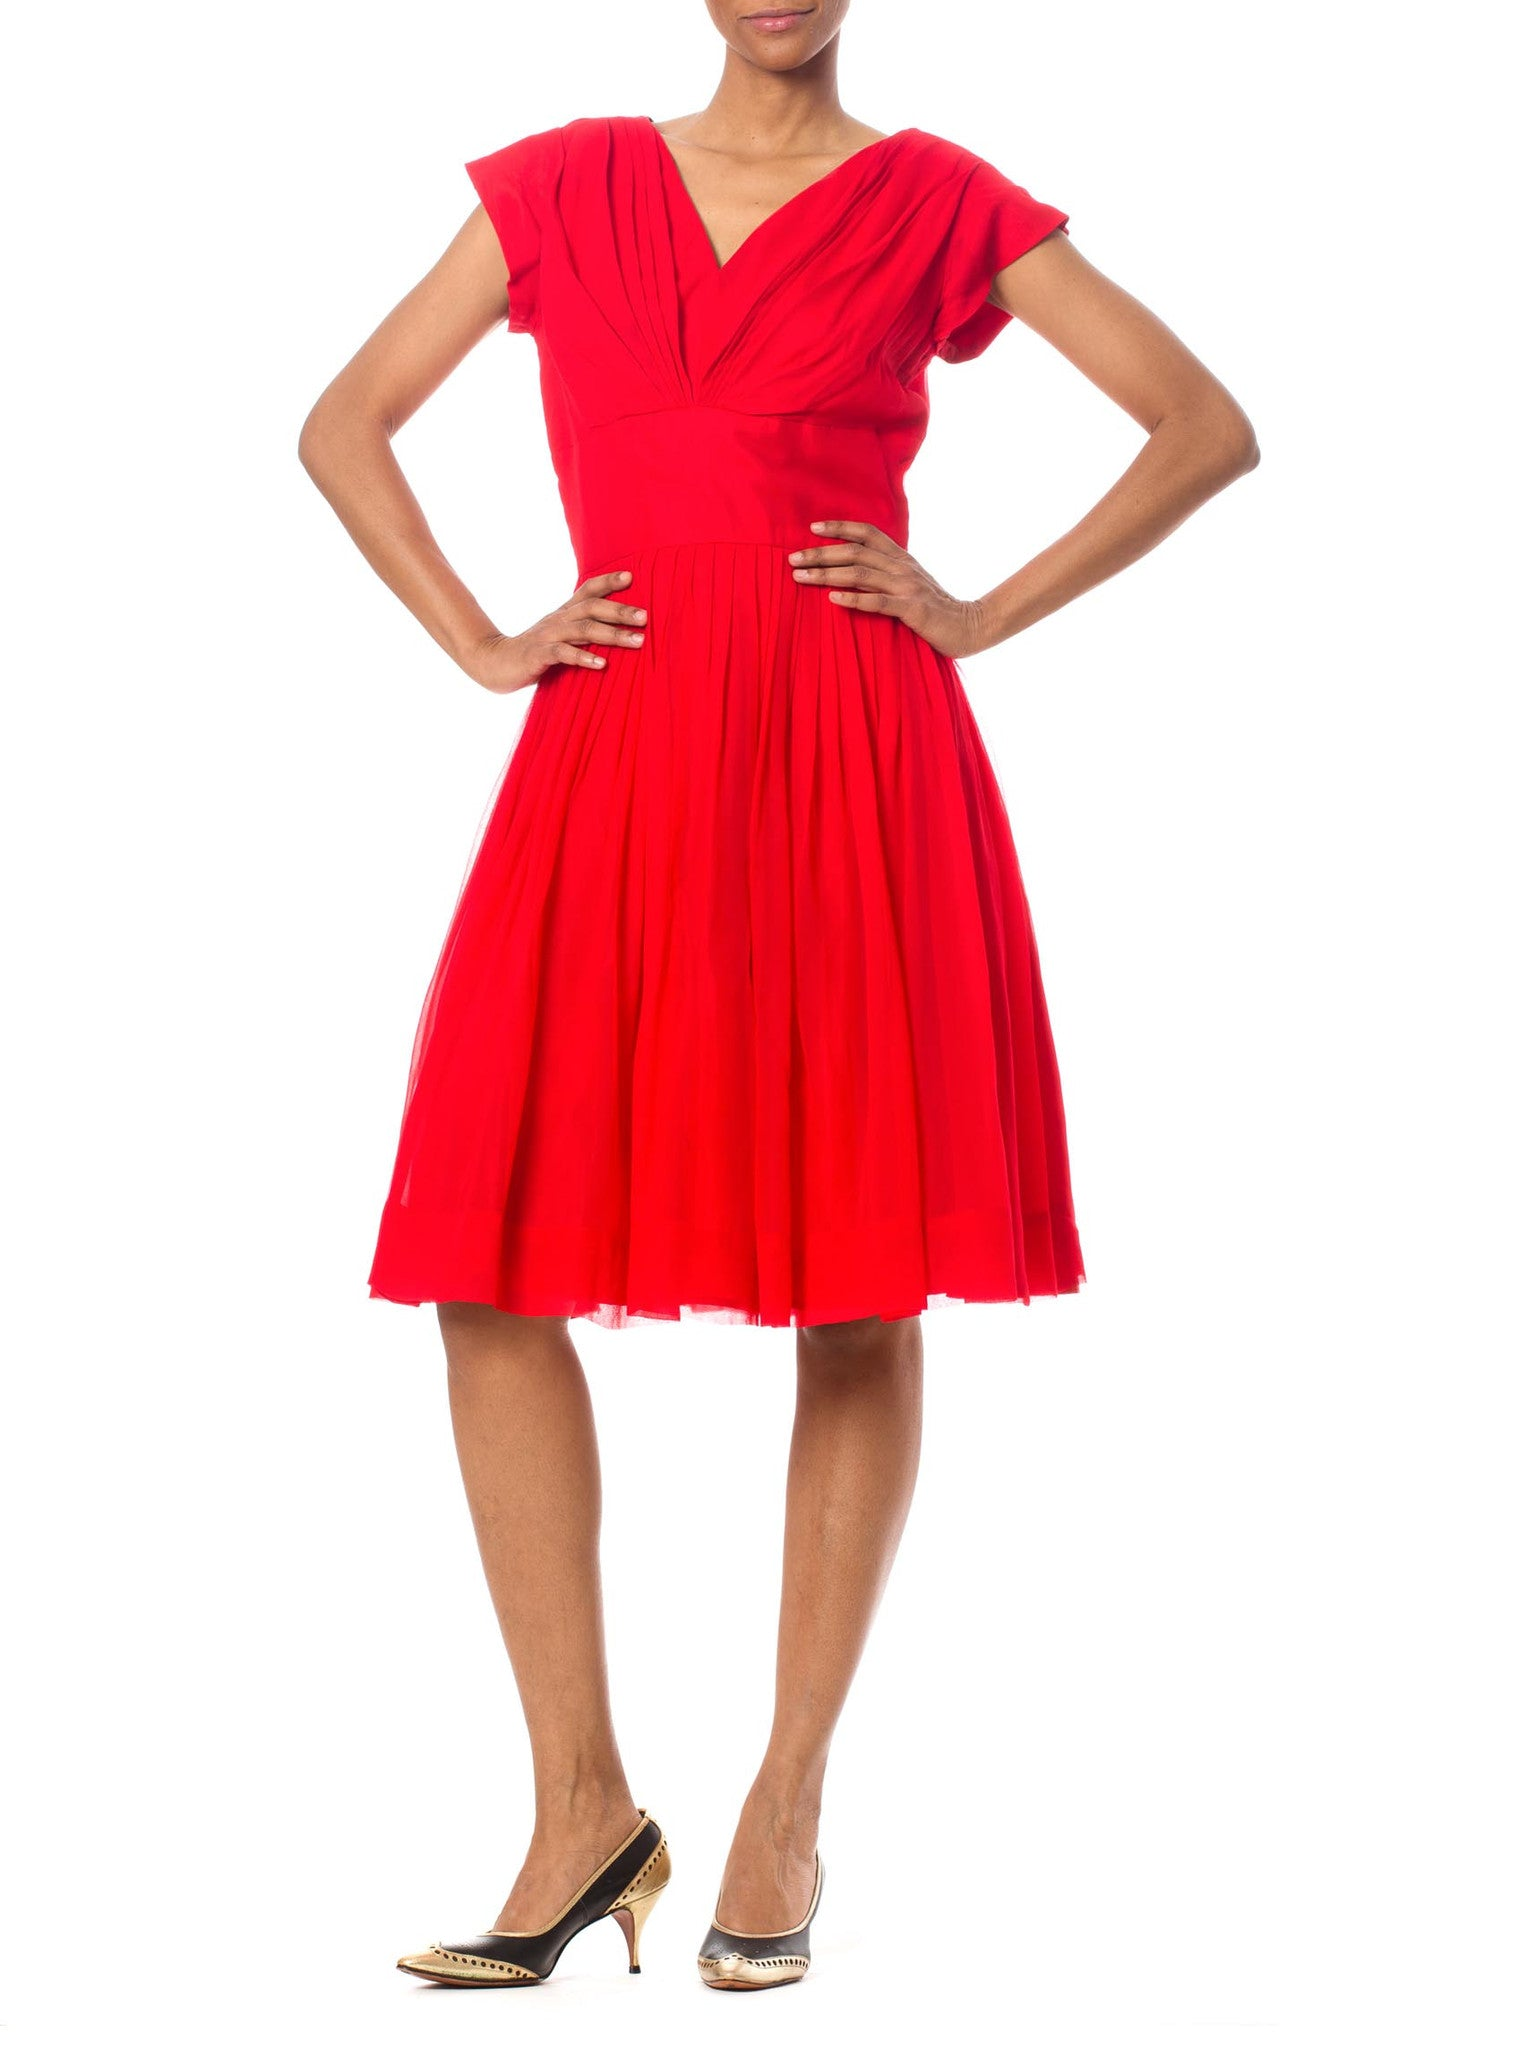 1980's Bright Red Vintage Cocktail Dress